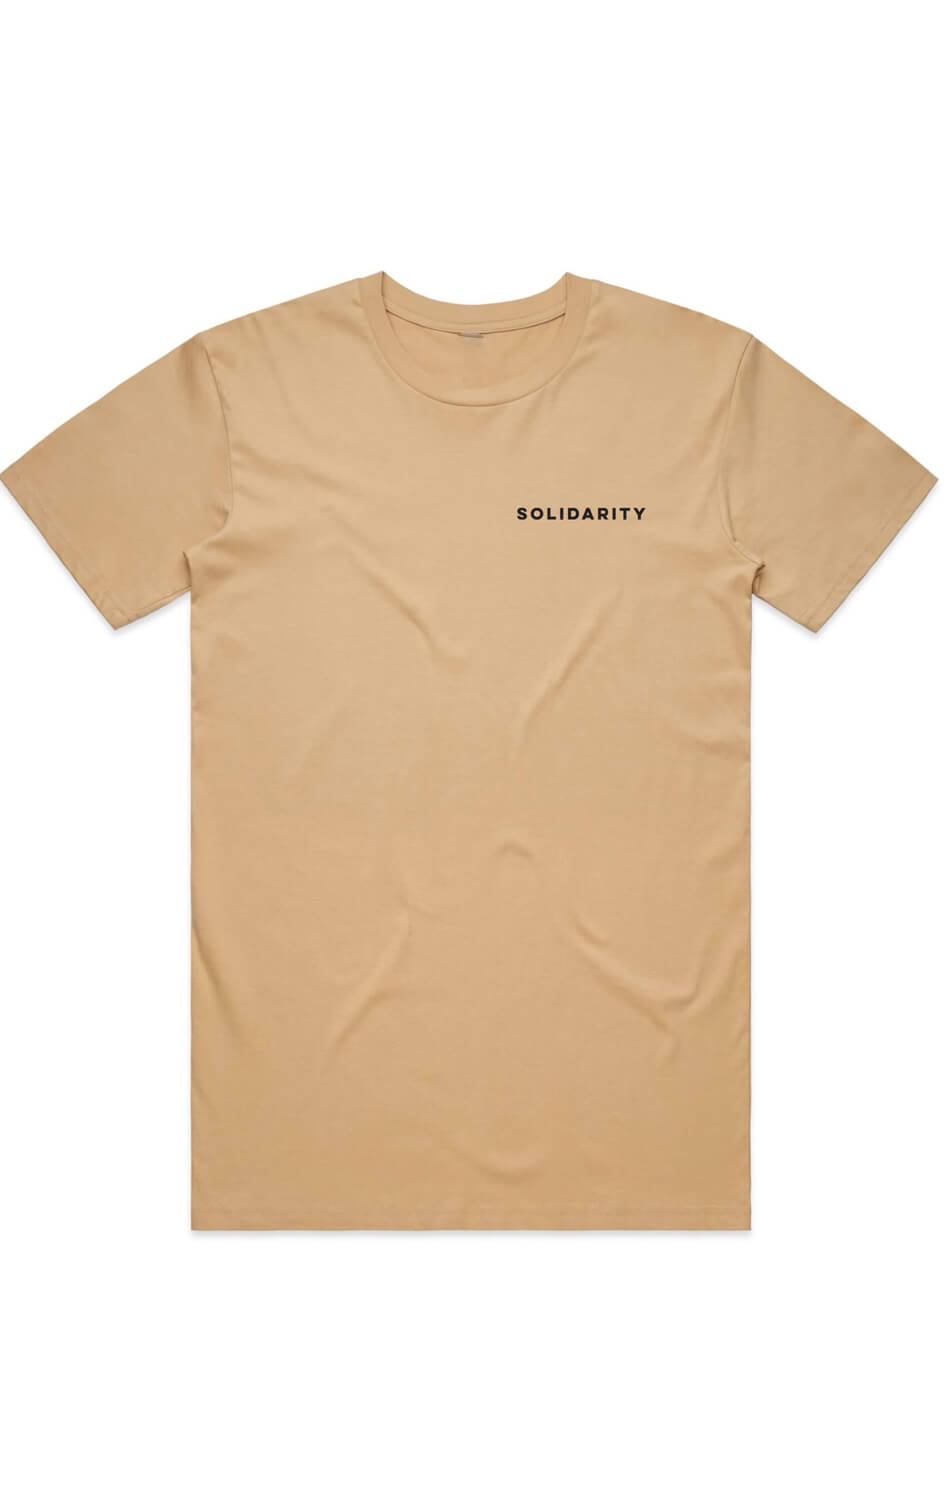 shop-dana-scott-black-lives-matter-solidarity-inclusive-graphic-t-shirt-tan